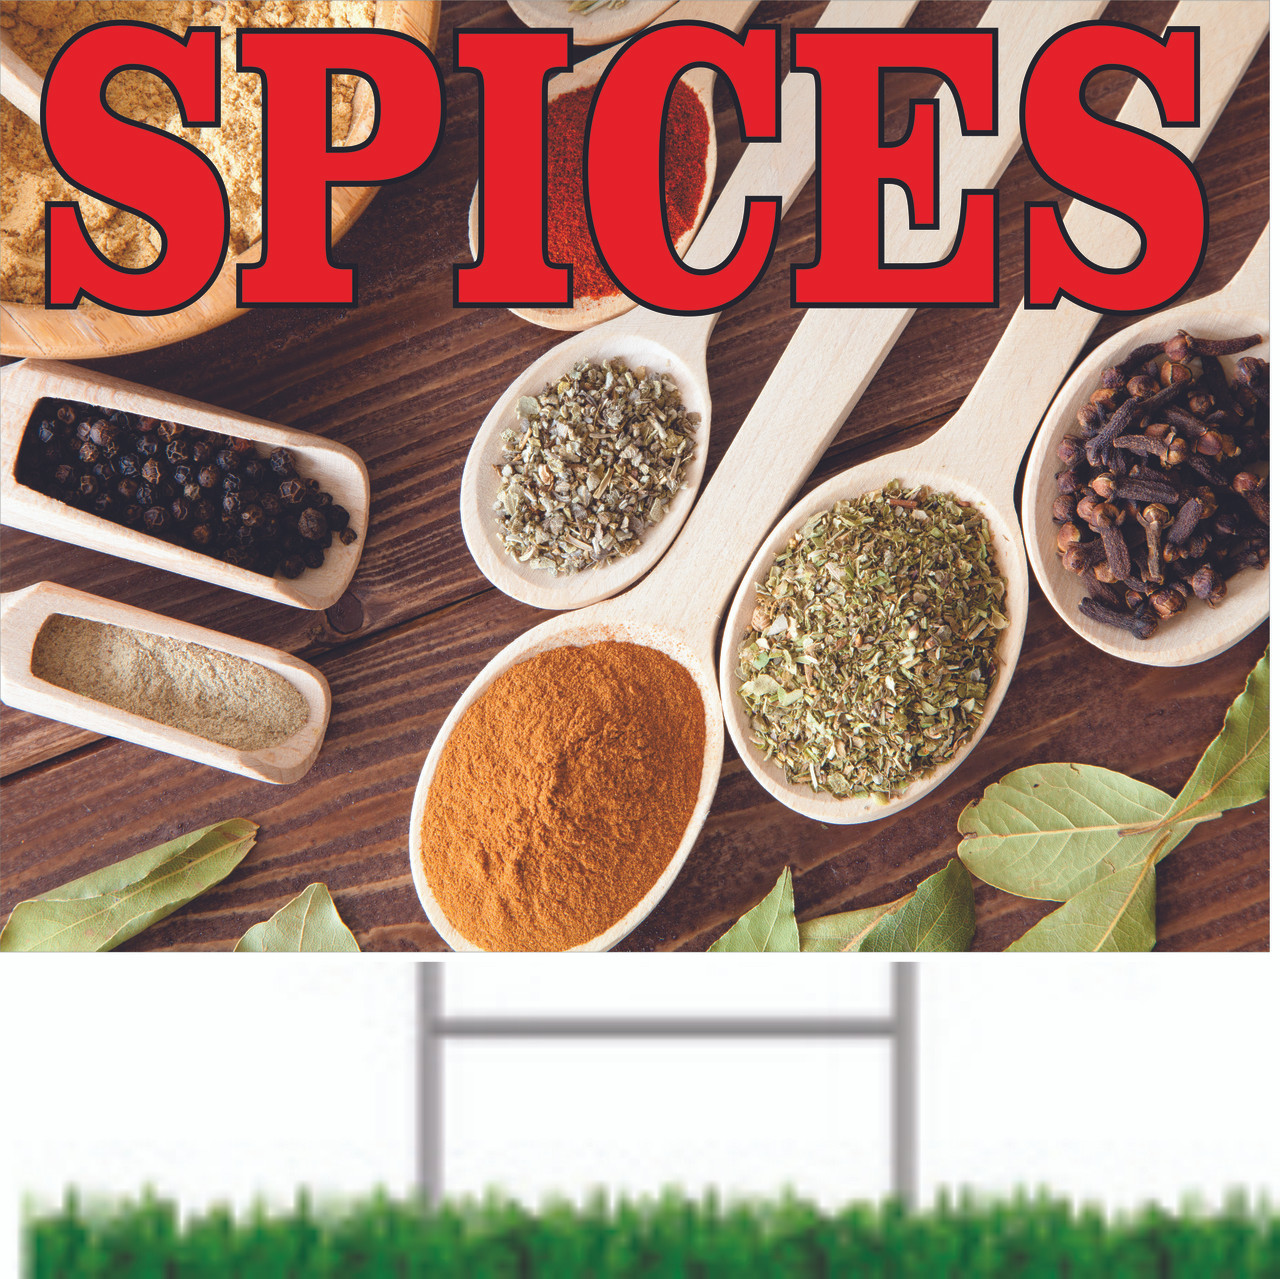 Let customer know you offer spices with this yard sign!